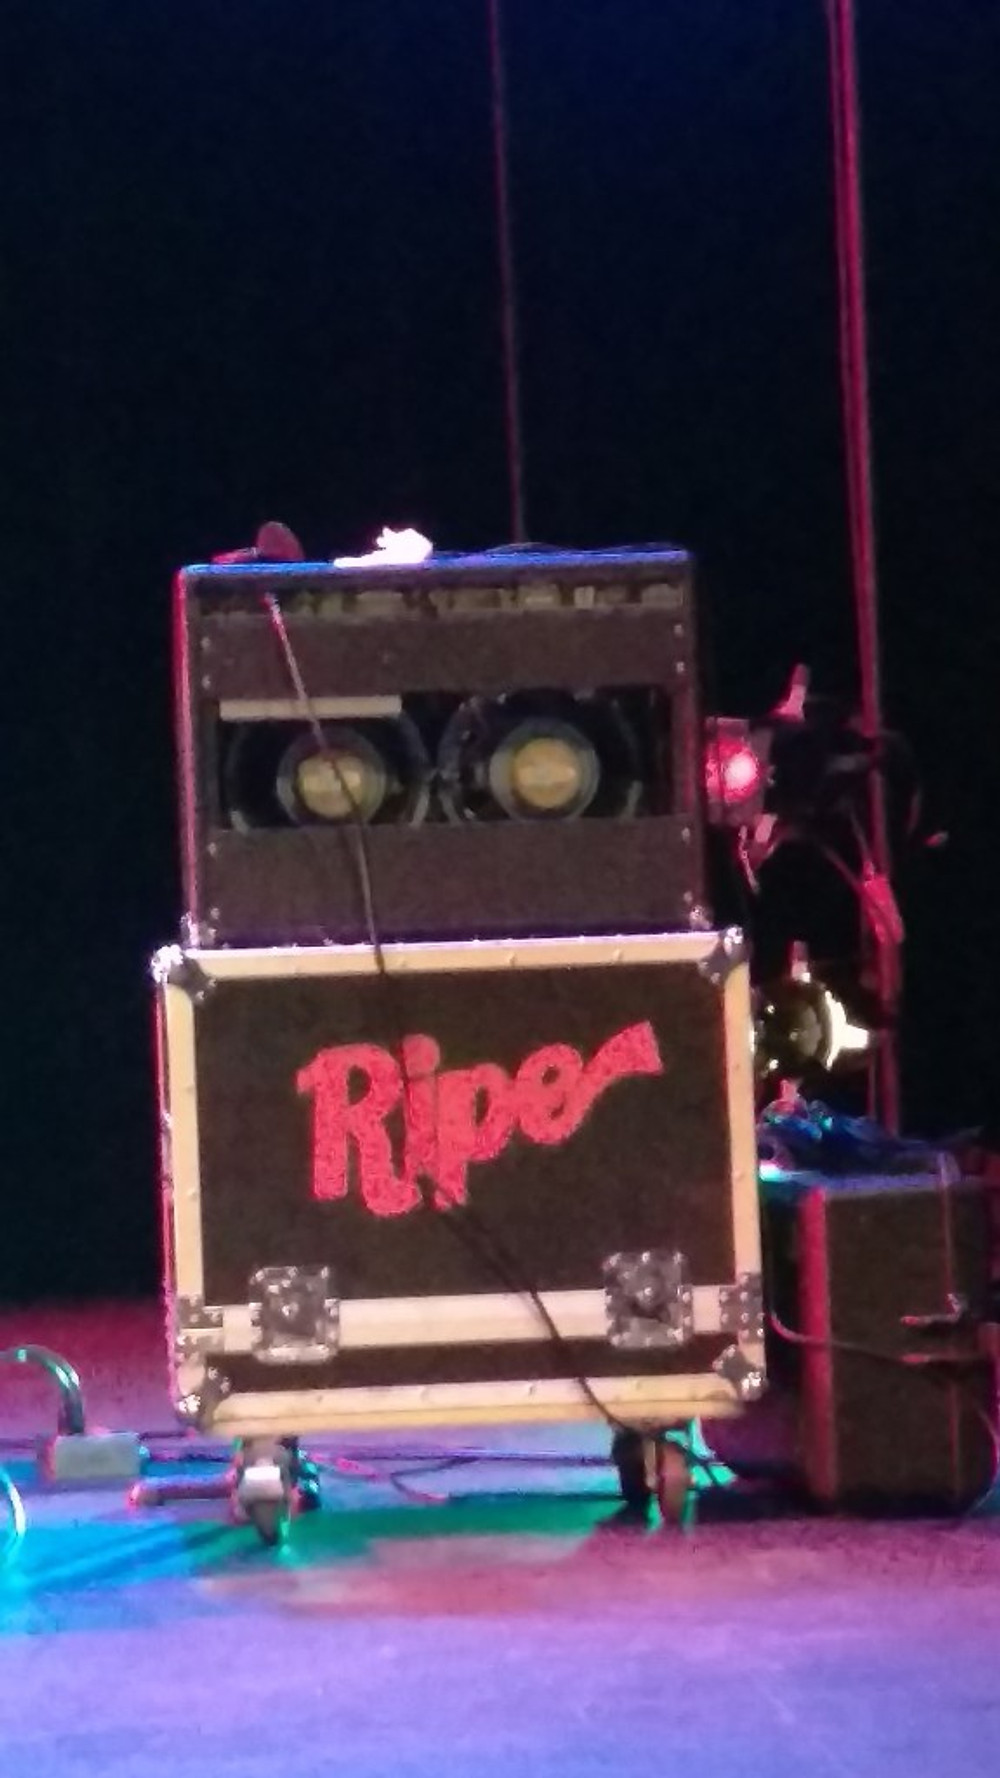 A picture of the band's sound trunk with their name Ripe on it.